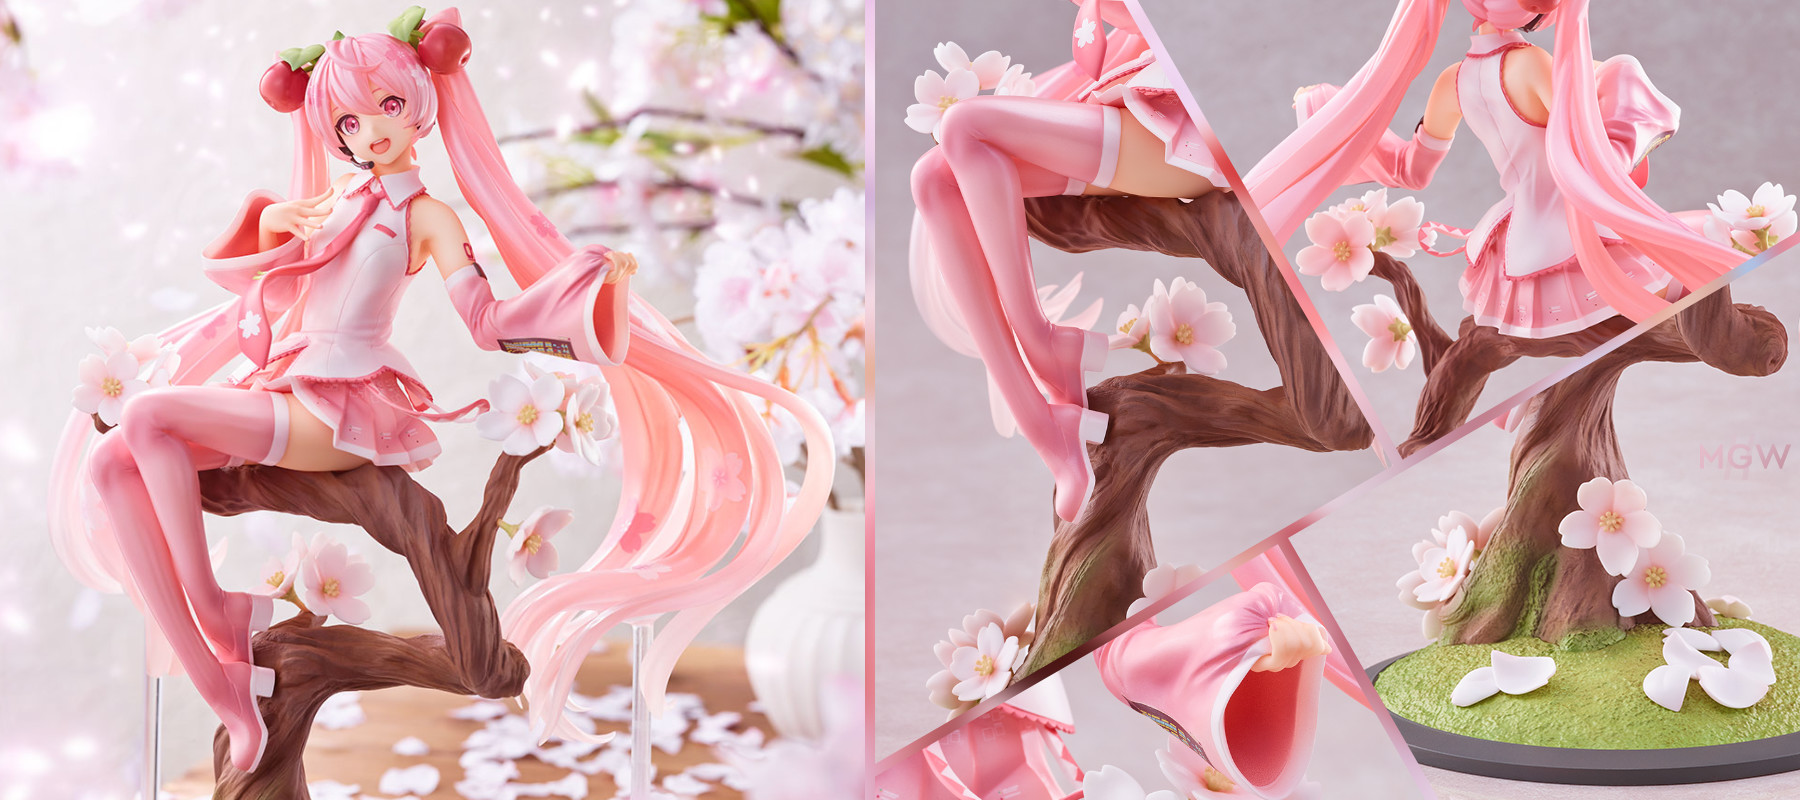 Sakura Miku Sakura Fairy ver. by spiritale with illustration by Iwato